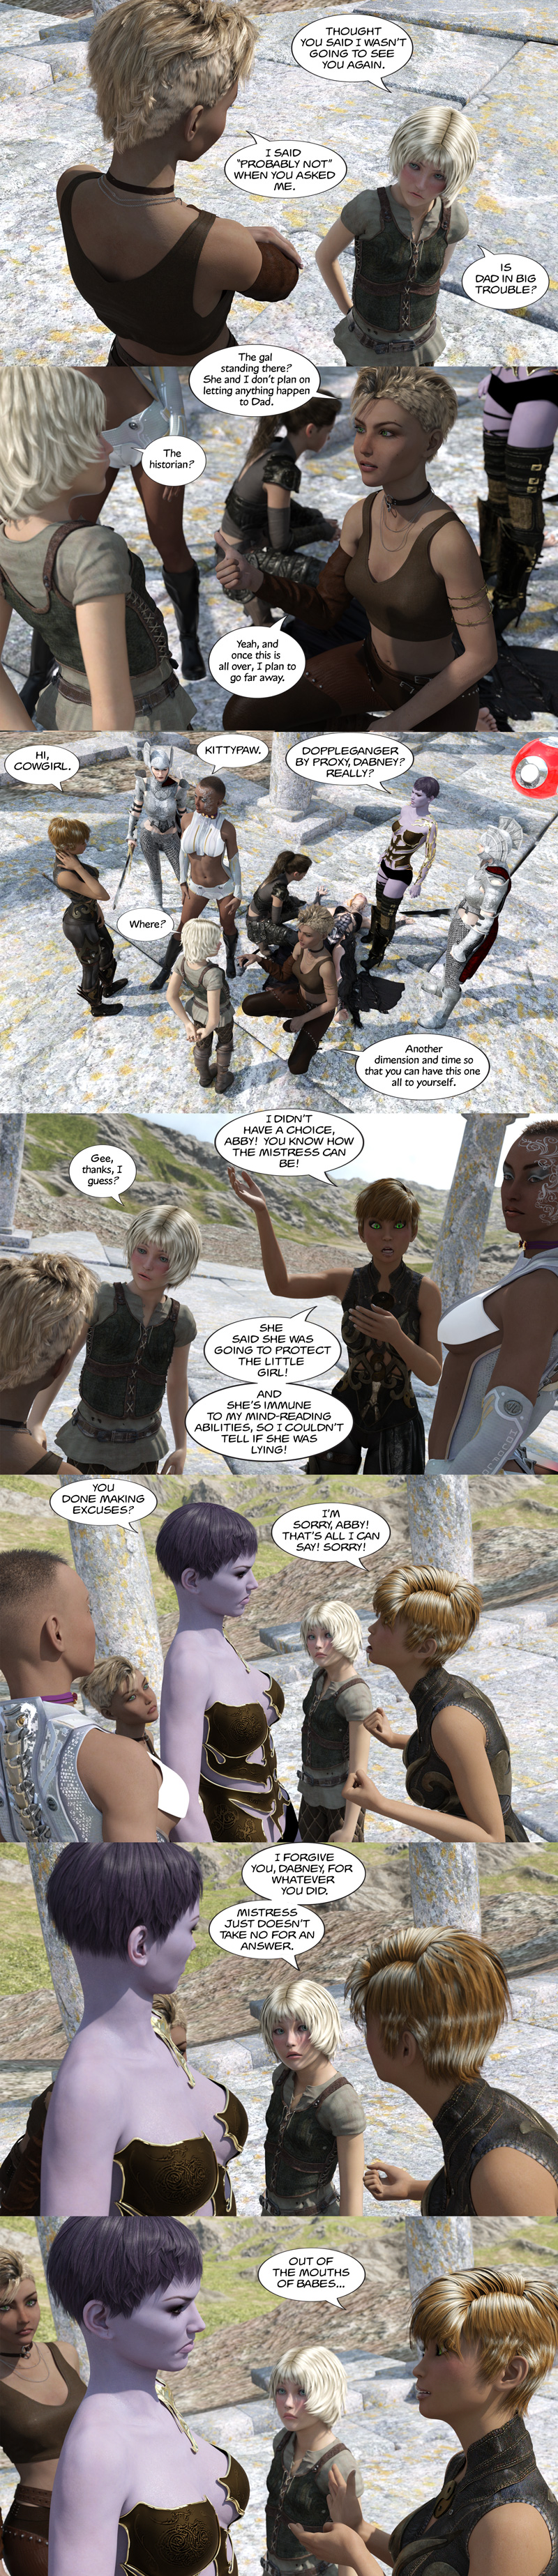 Chapter 16, page 30